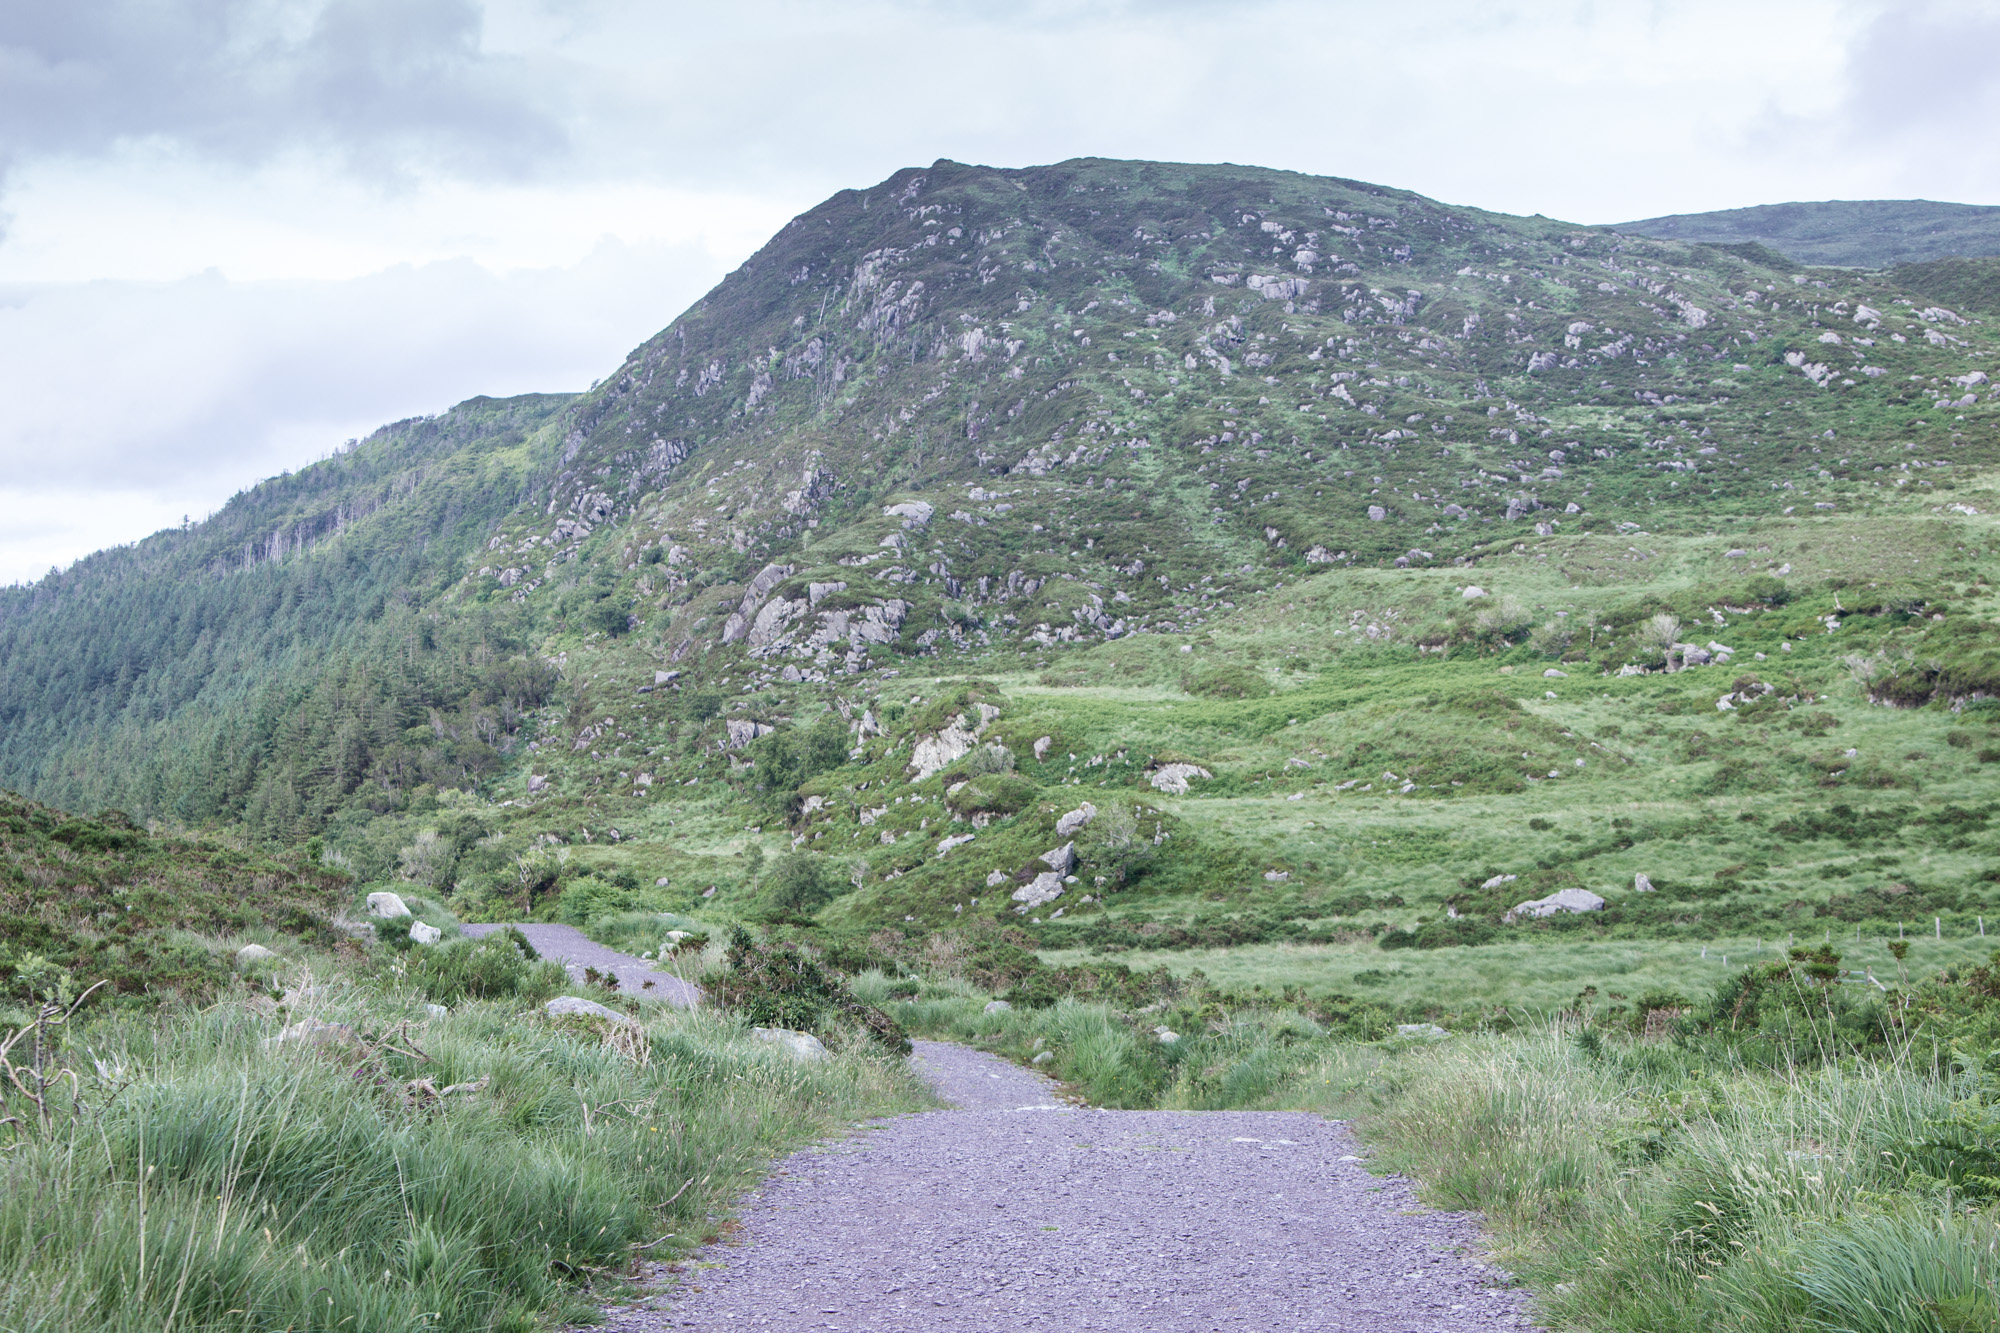 Torc Mountain Trail in Killarney National Park in Ireland is surrounded by grass, rocks, and other hills and mountains